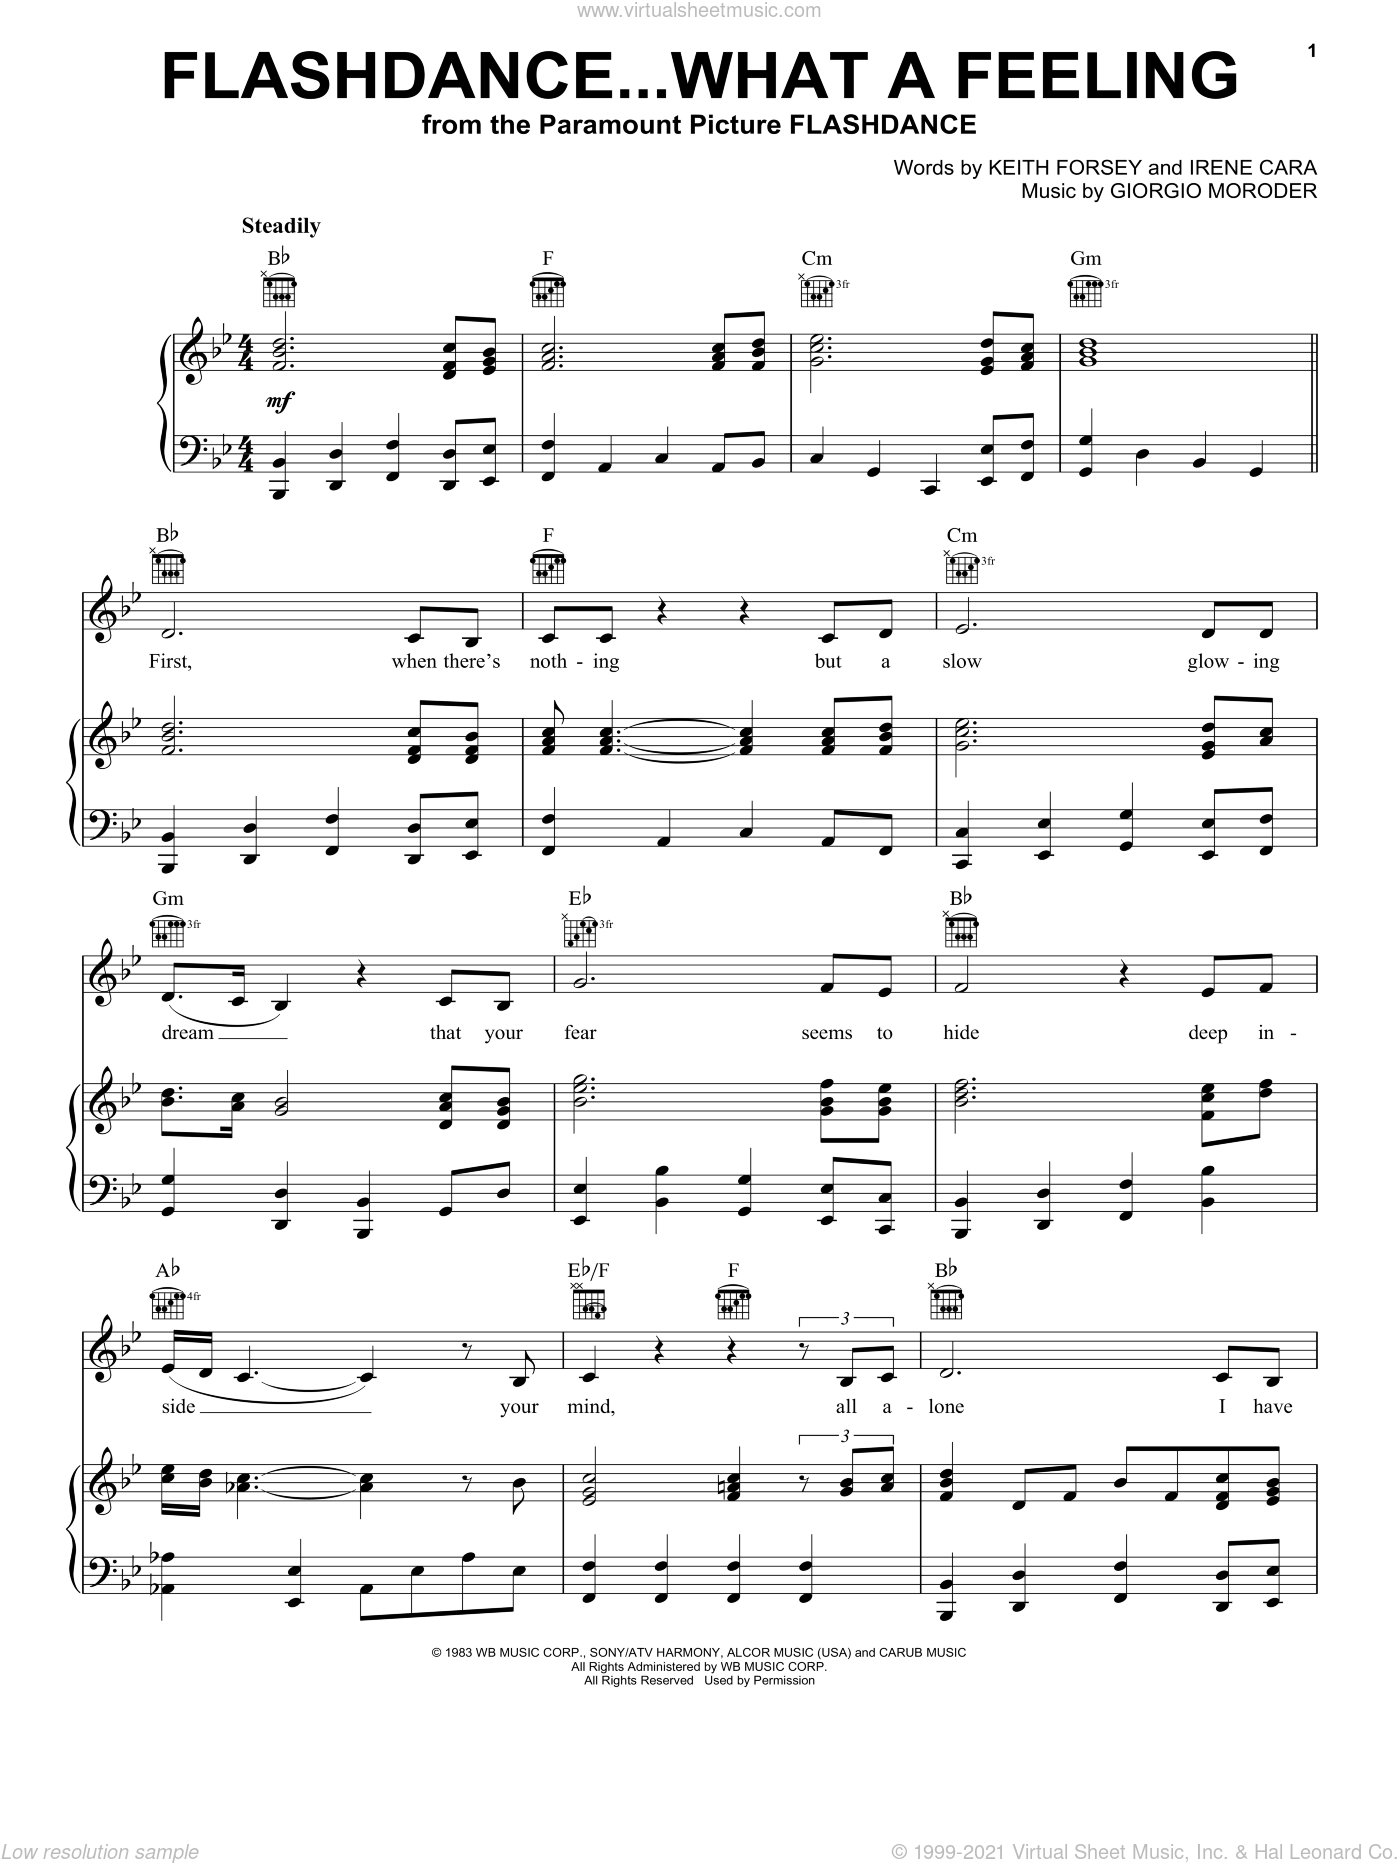 Flashdance...What A Feeling sheet music for voice, piano or guitar by Keith Forsey